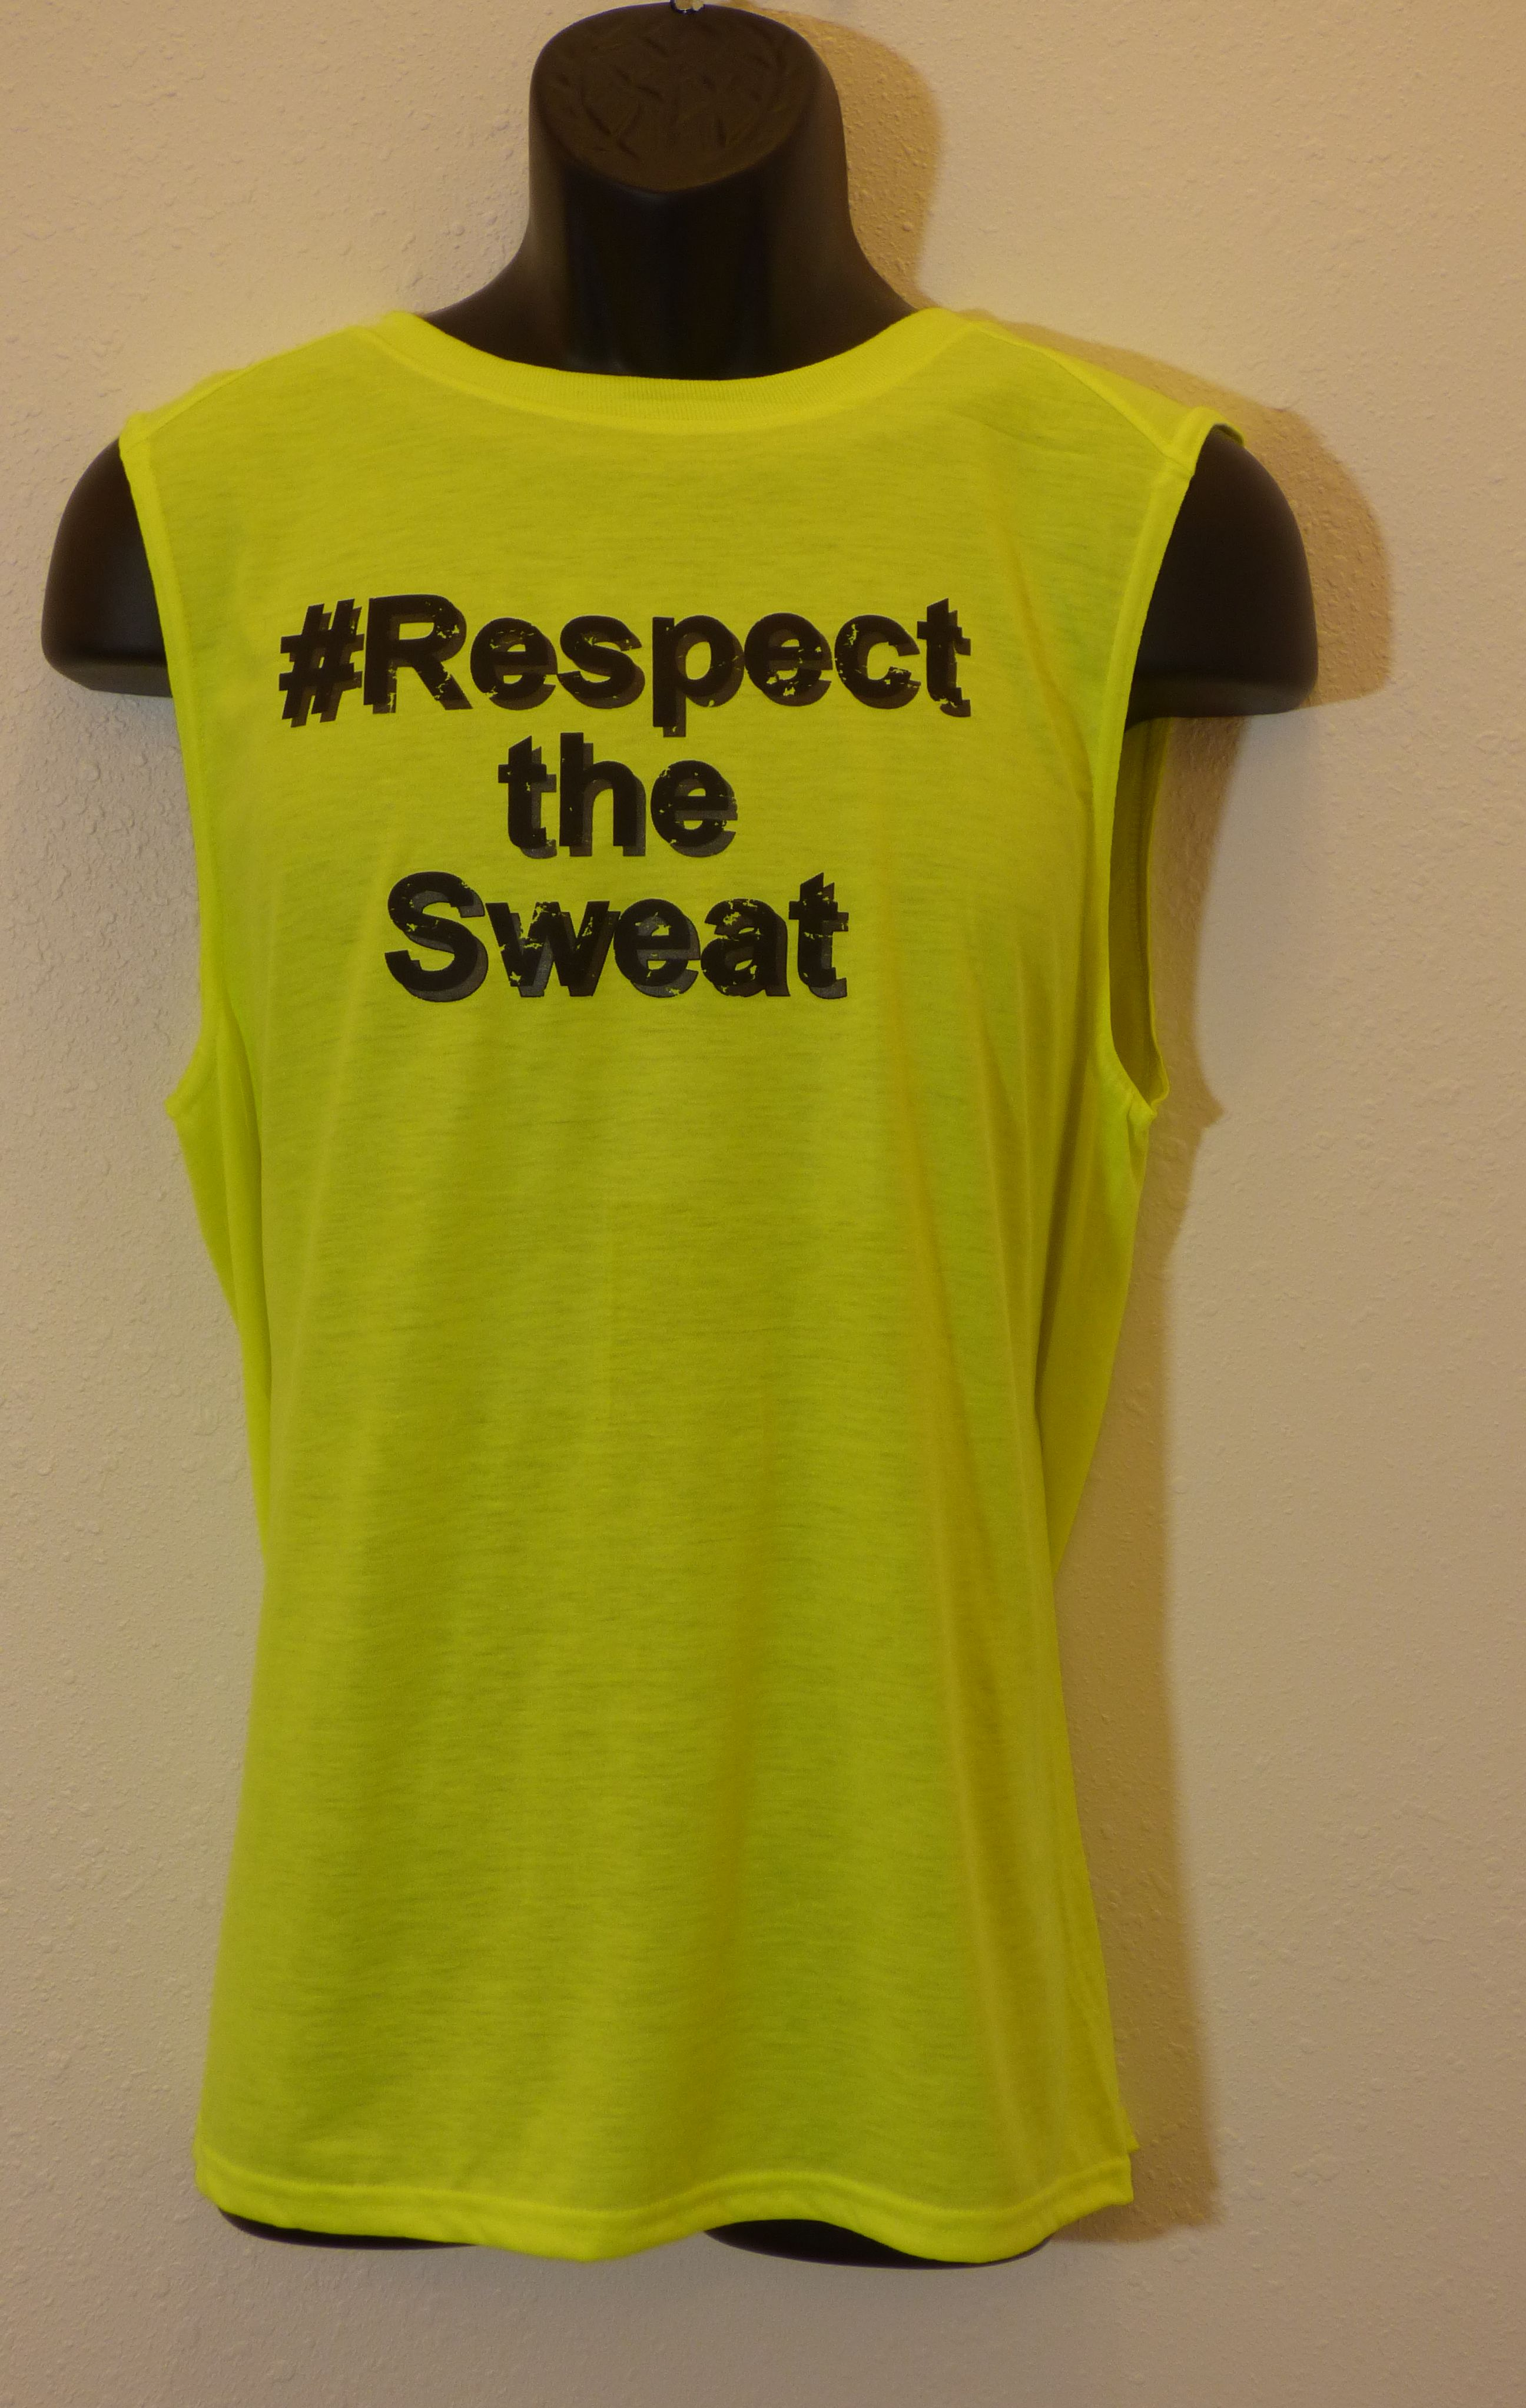 Men's 'Respect The Sweat' muscle shirt